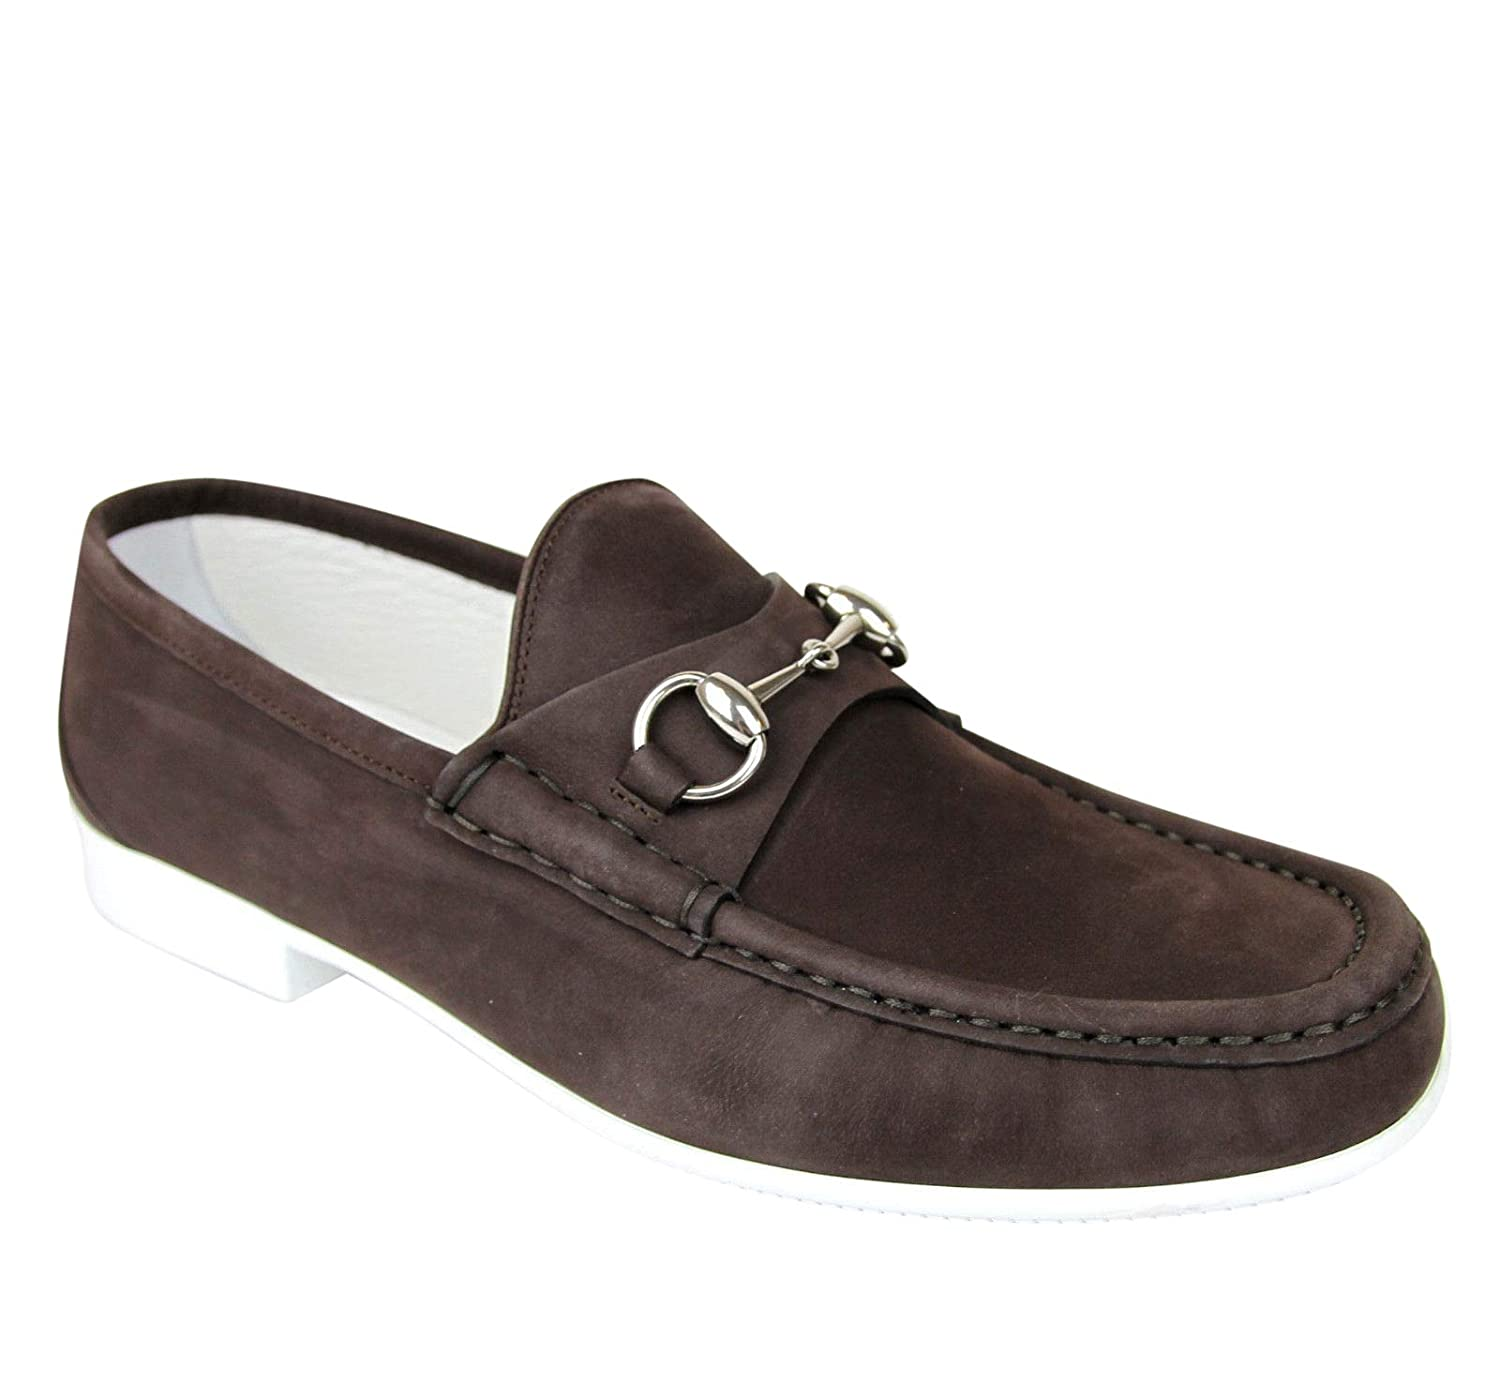 c6b10c785a5 Amazon.com  Gucci Moccasin Suede Horsebit Loafer 337060 BHO00  Shoes